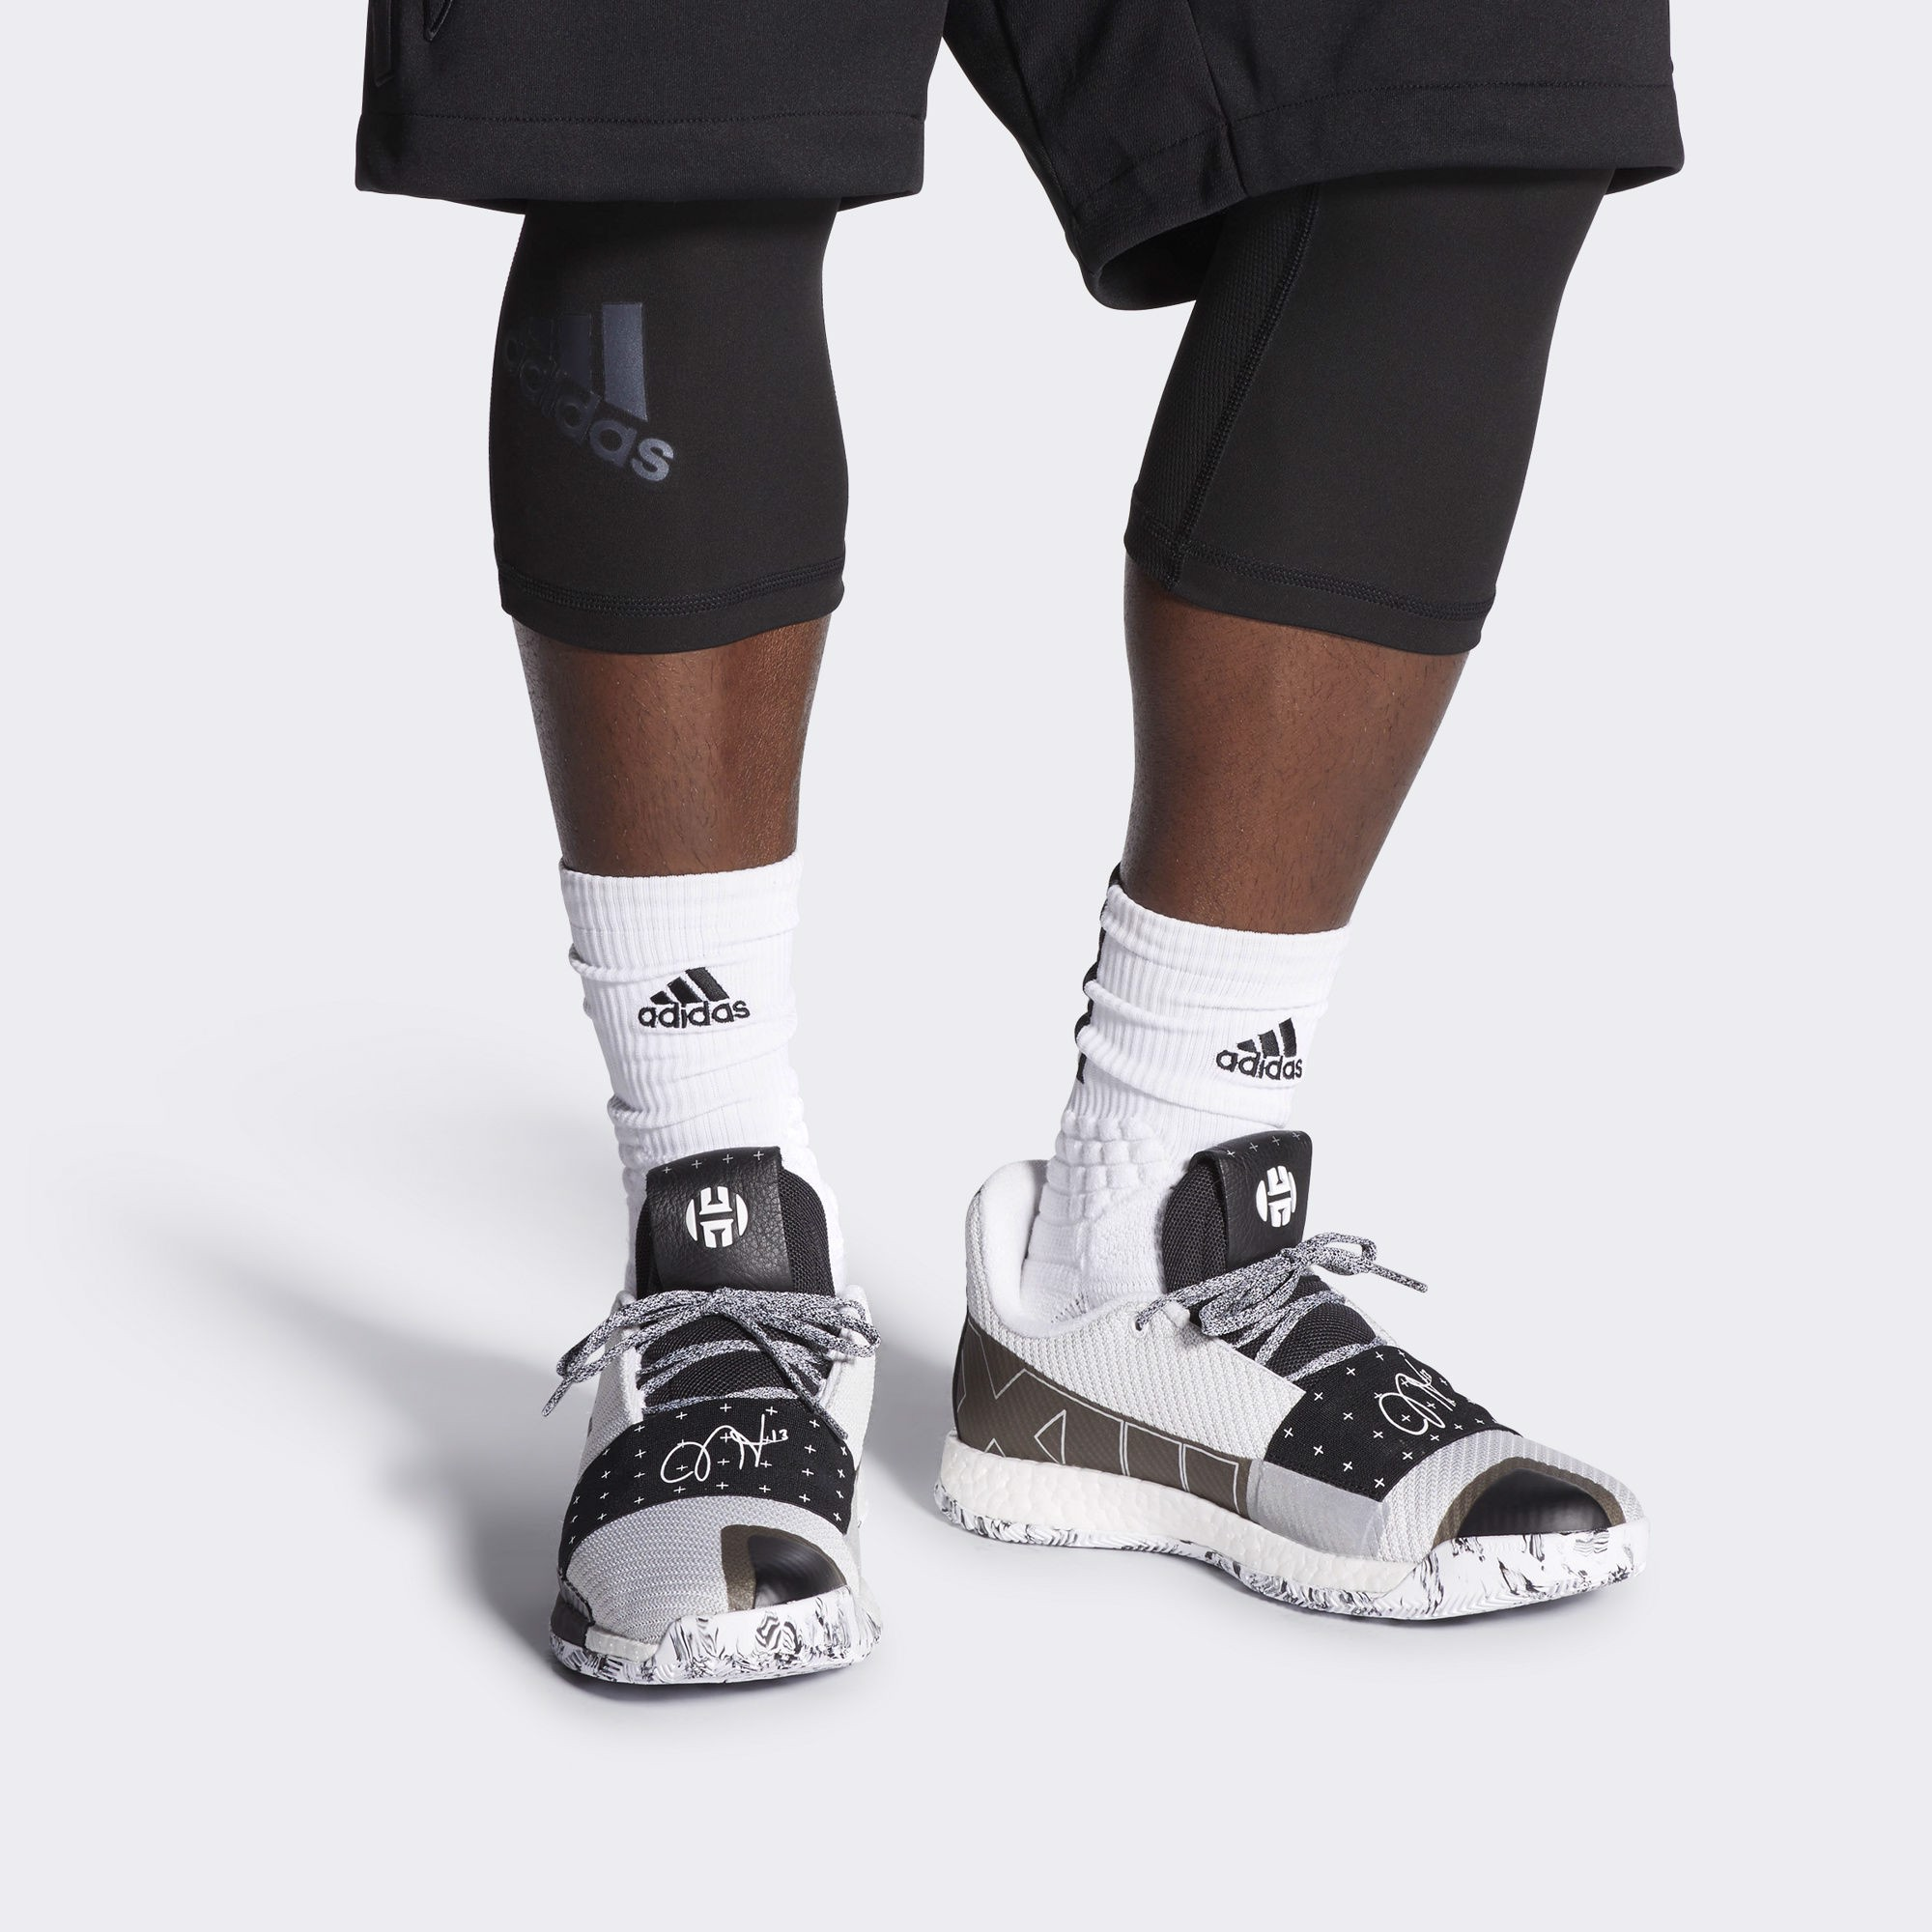 adidas Harden 3 White Black Grey